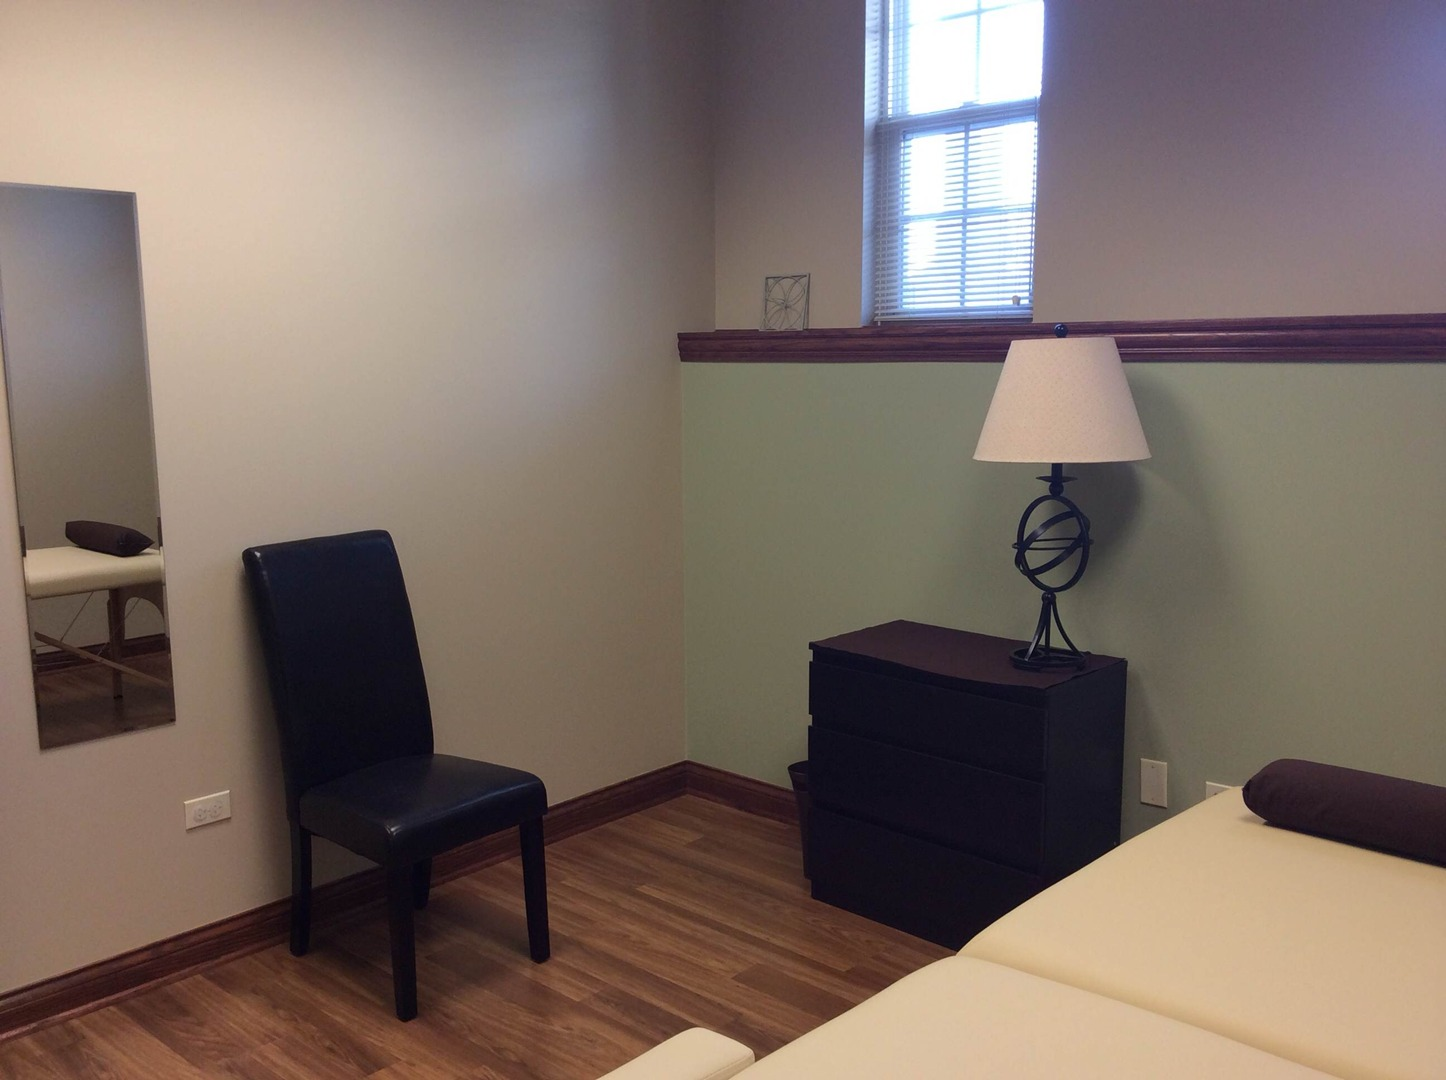 chiropractic acupuncture and massage room